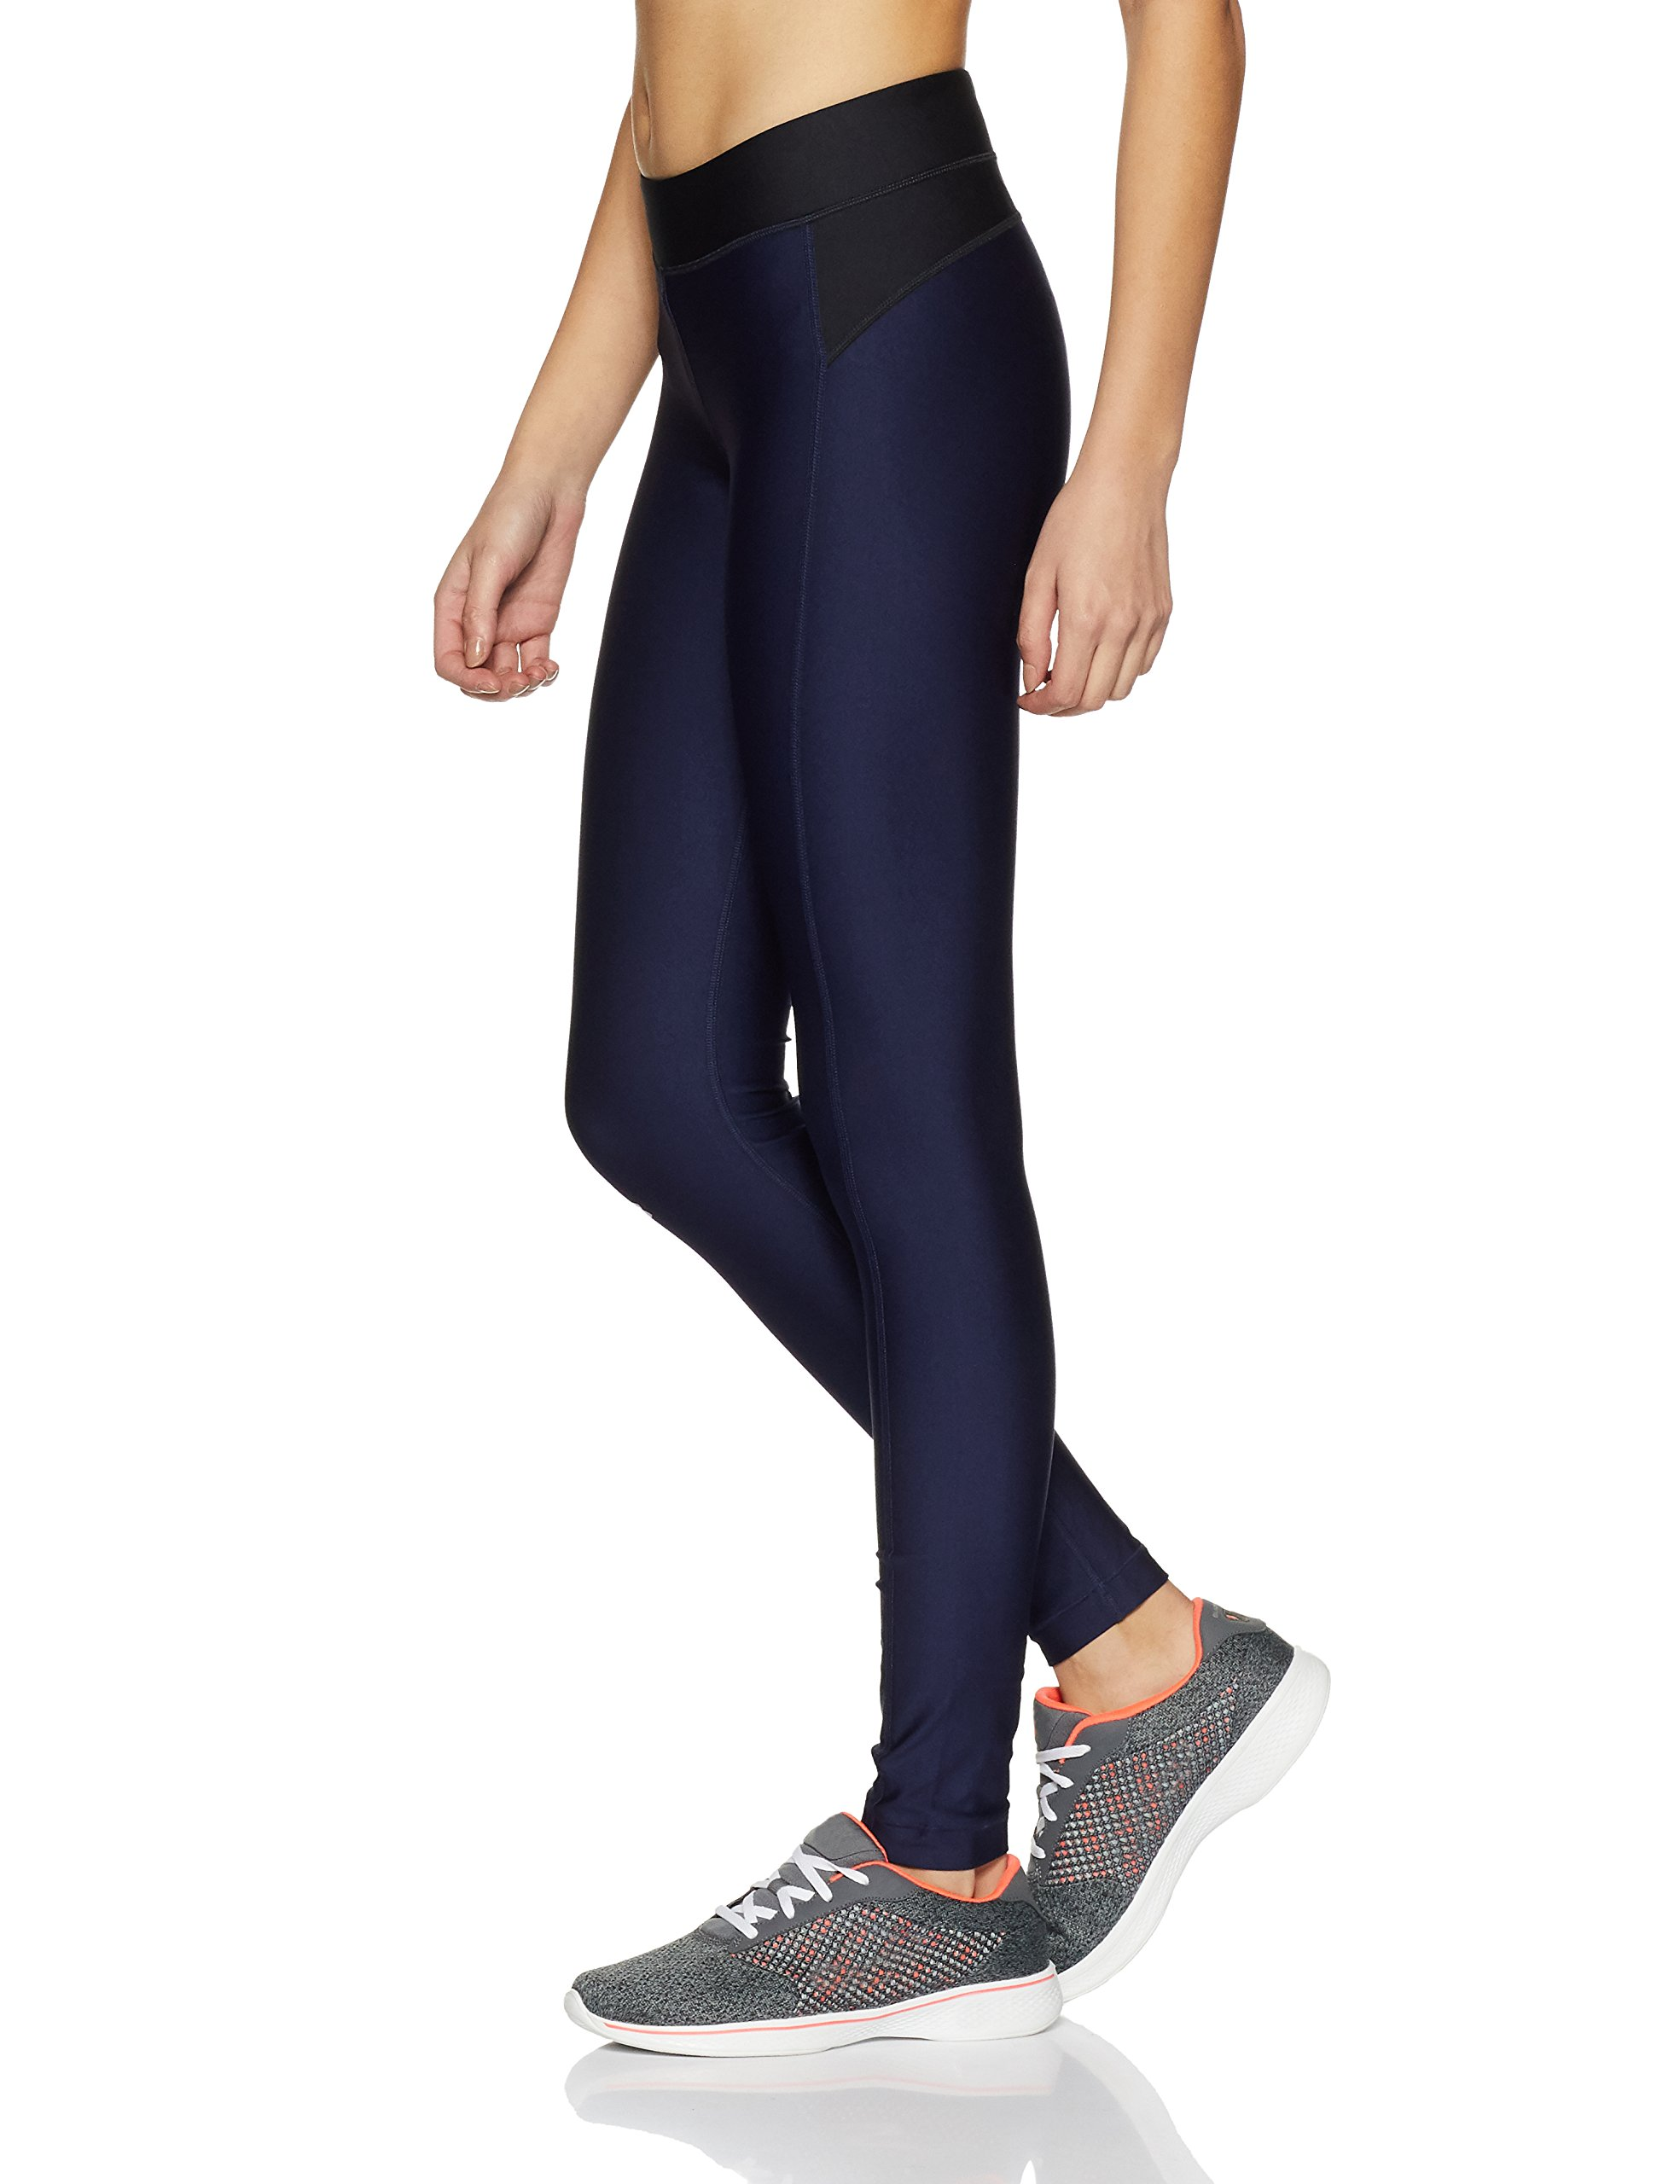 Under Armour Womens Heatgear Armour Leggings, Midnight Navy /Metallic Silver, XX-Large by Under Armour (Image #3)